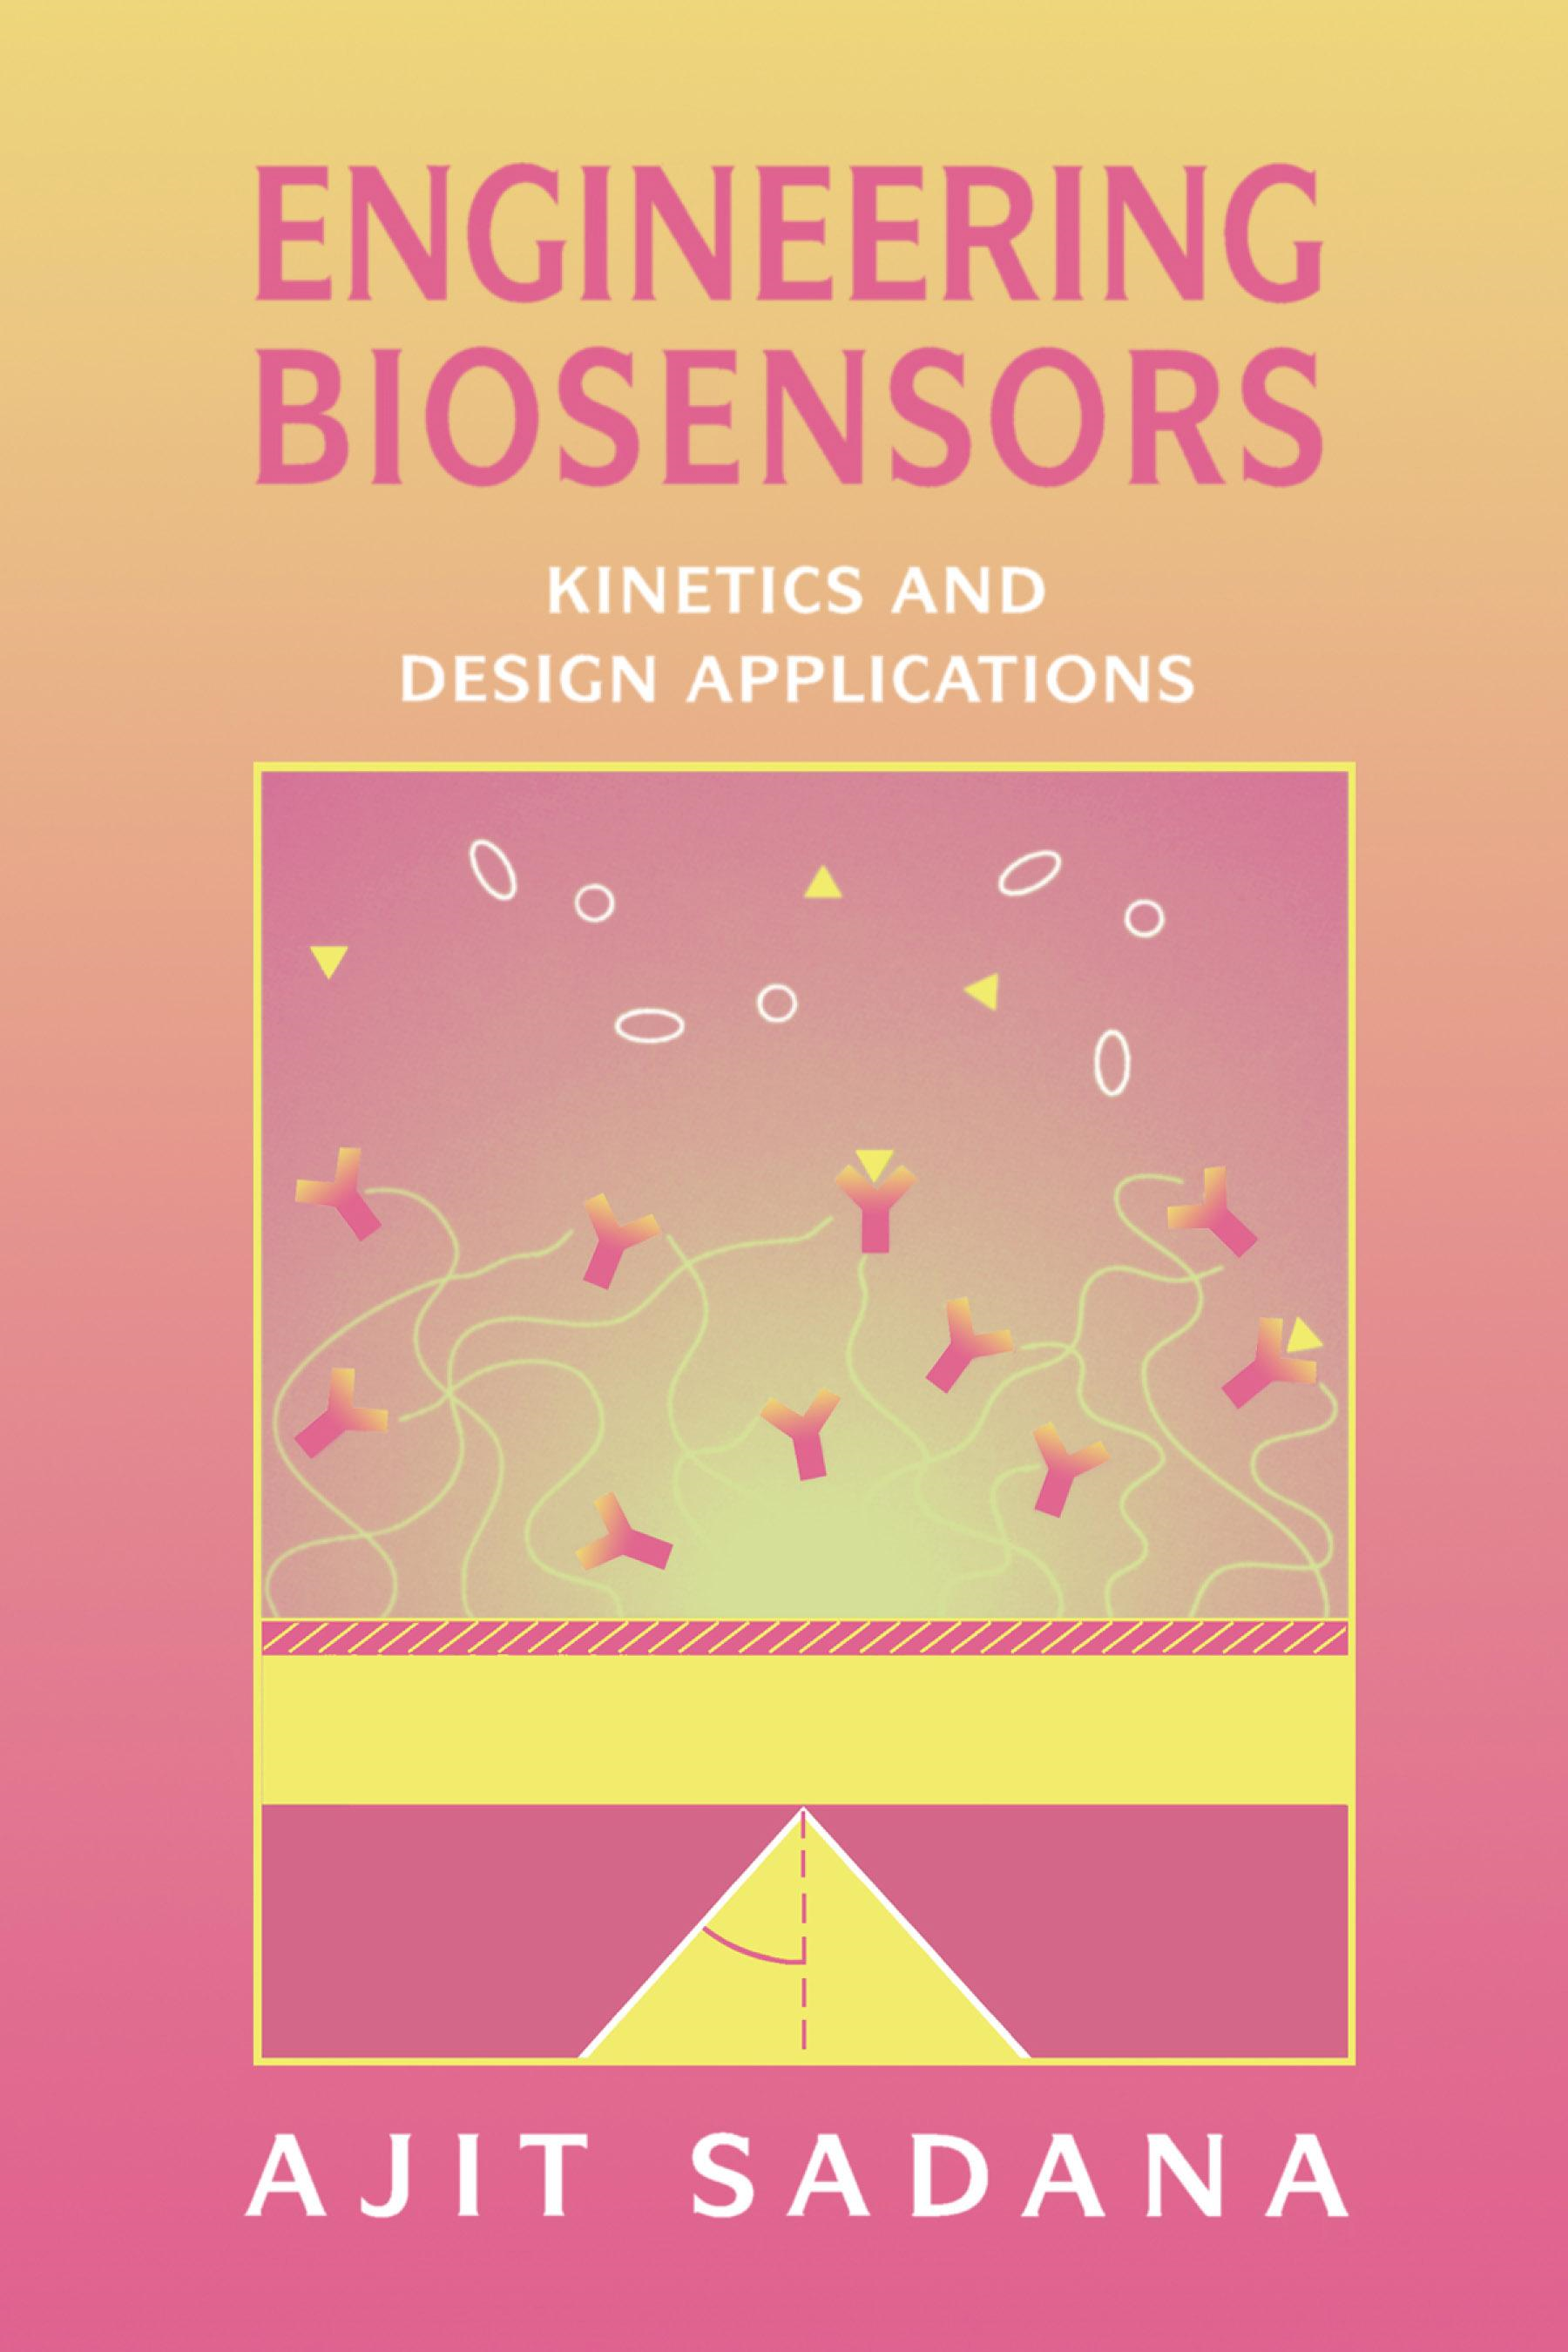 Engineering Biosensors: Kinetics and Design Applications